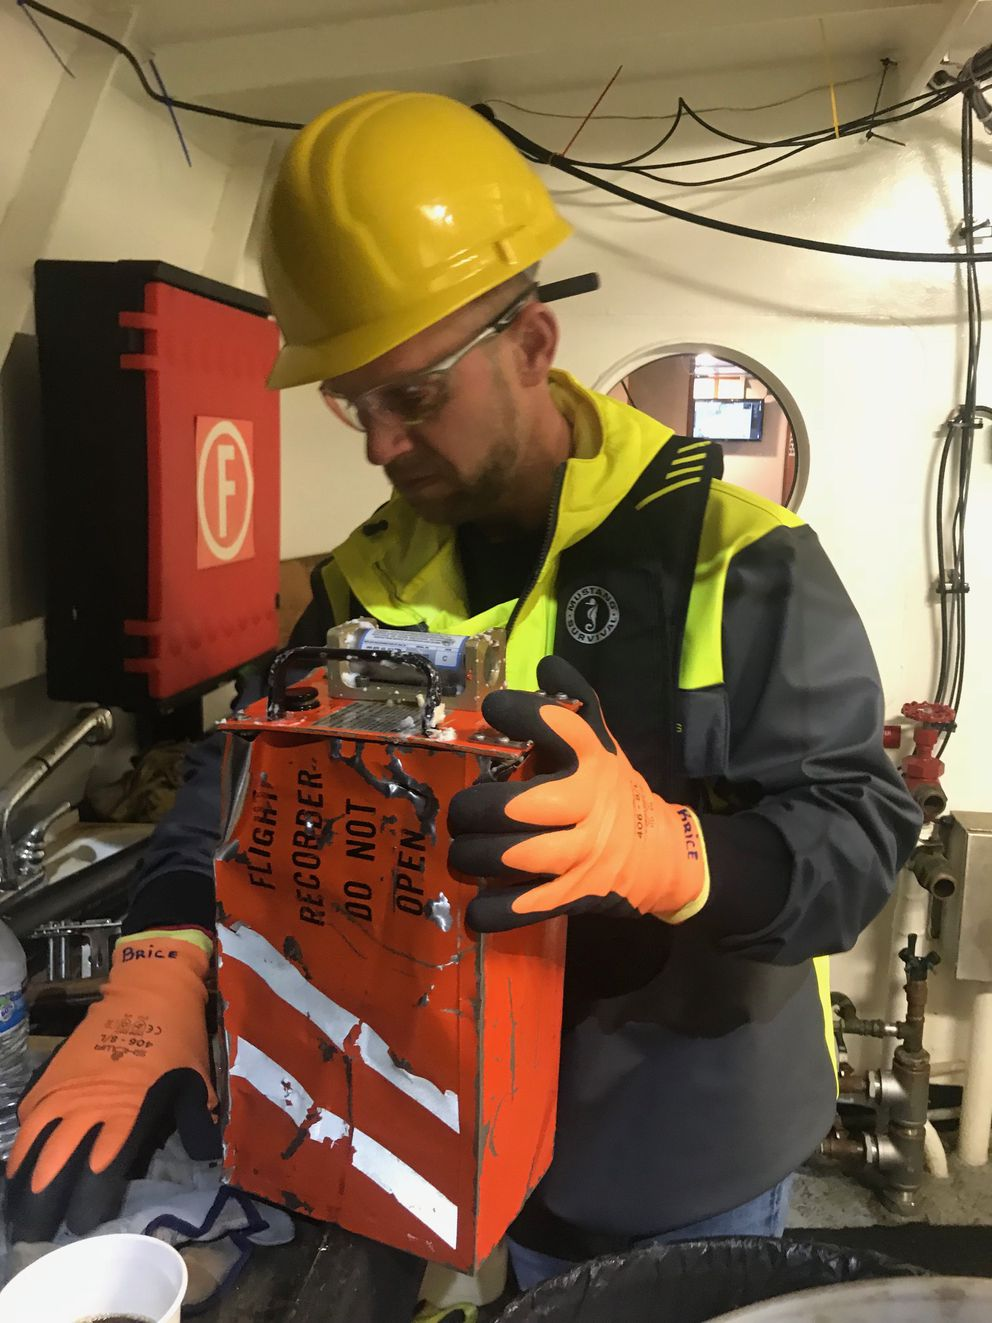 NTSB investigator Brice Banning holds a flight recorder from a Beechcraft B200 that was recovered from the ocean waters of Frederick Sound near Kake. (NTSB photo)